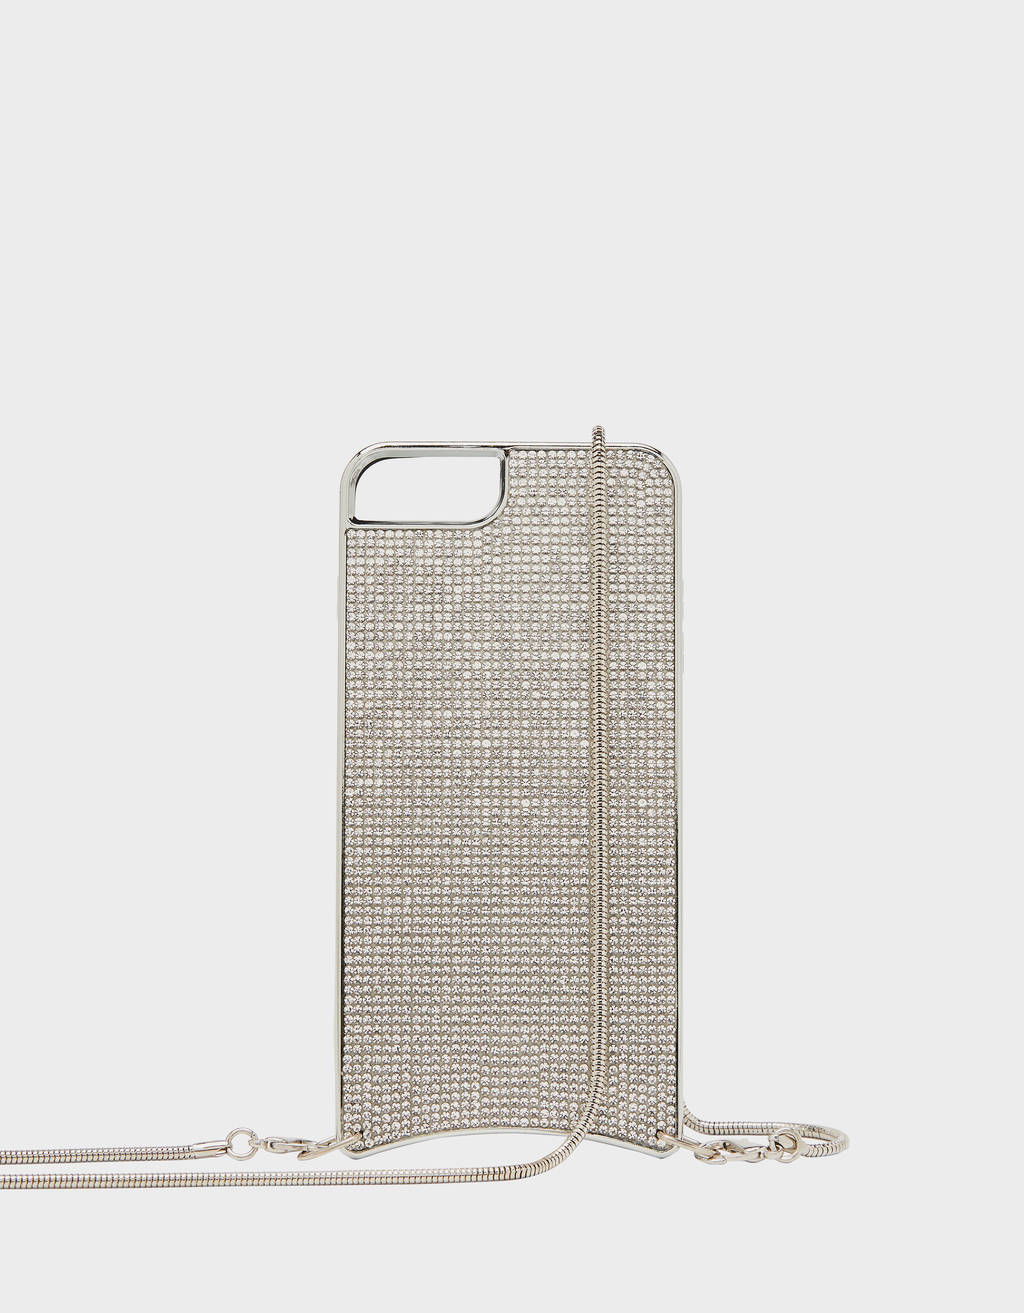 Rhinestone case with chain iPhone 6 Plus / 7 Plus / 8 Plus